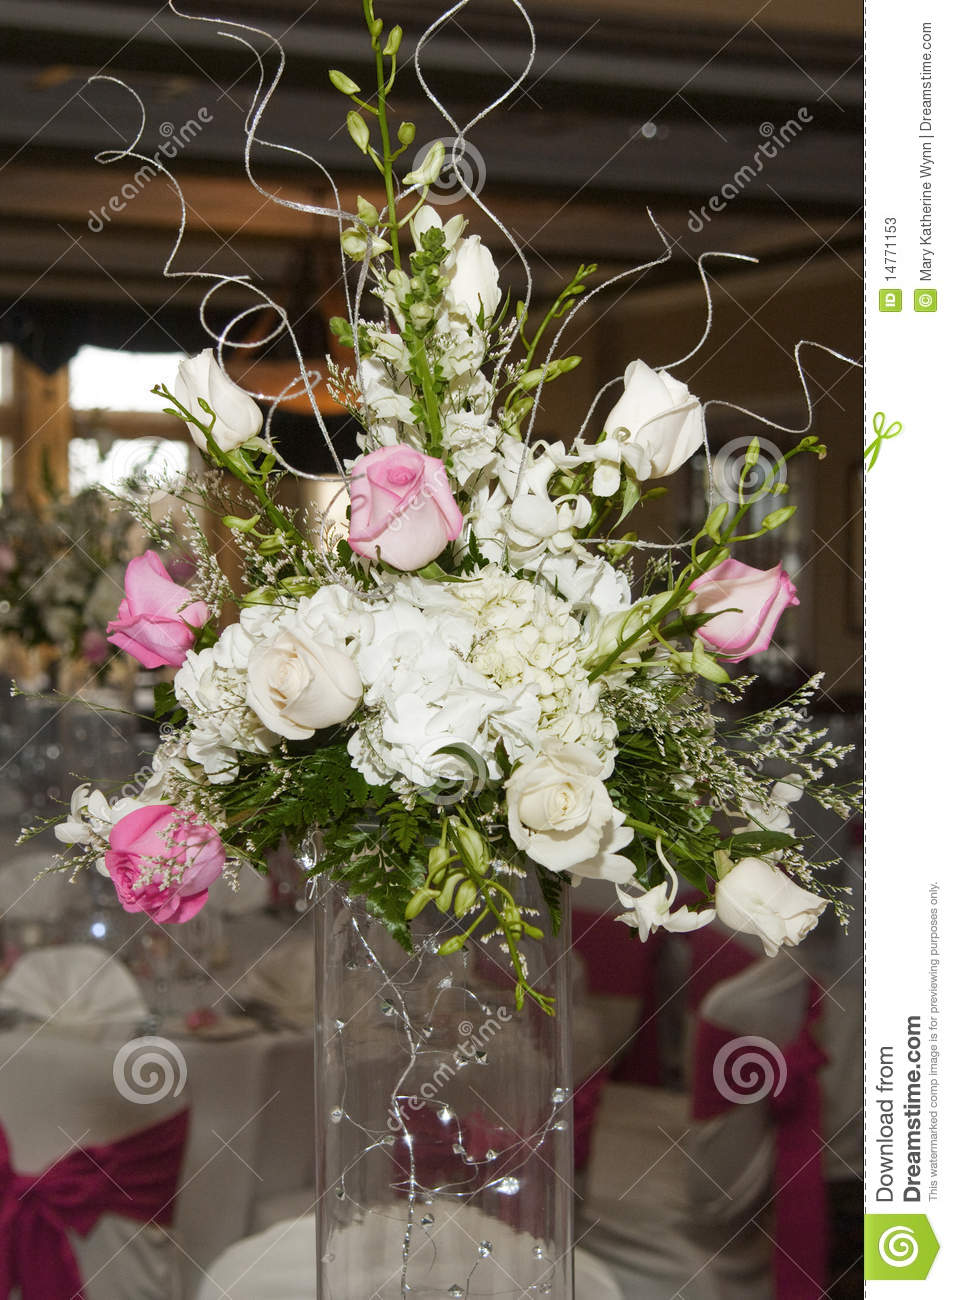 flowers arrangements for wedding wedding floral table arrangement stock image image of 4248